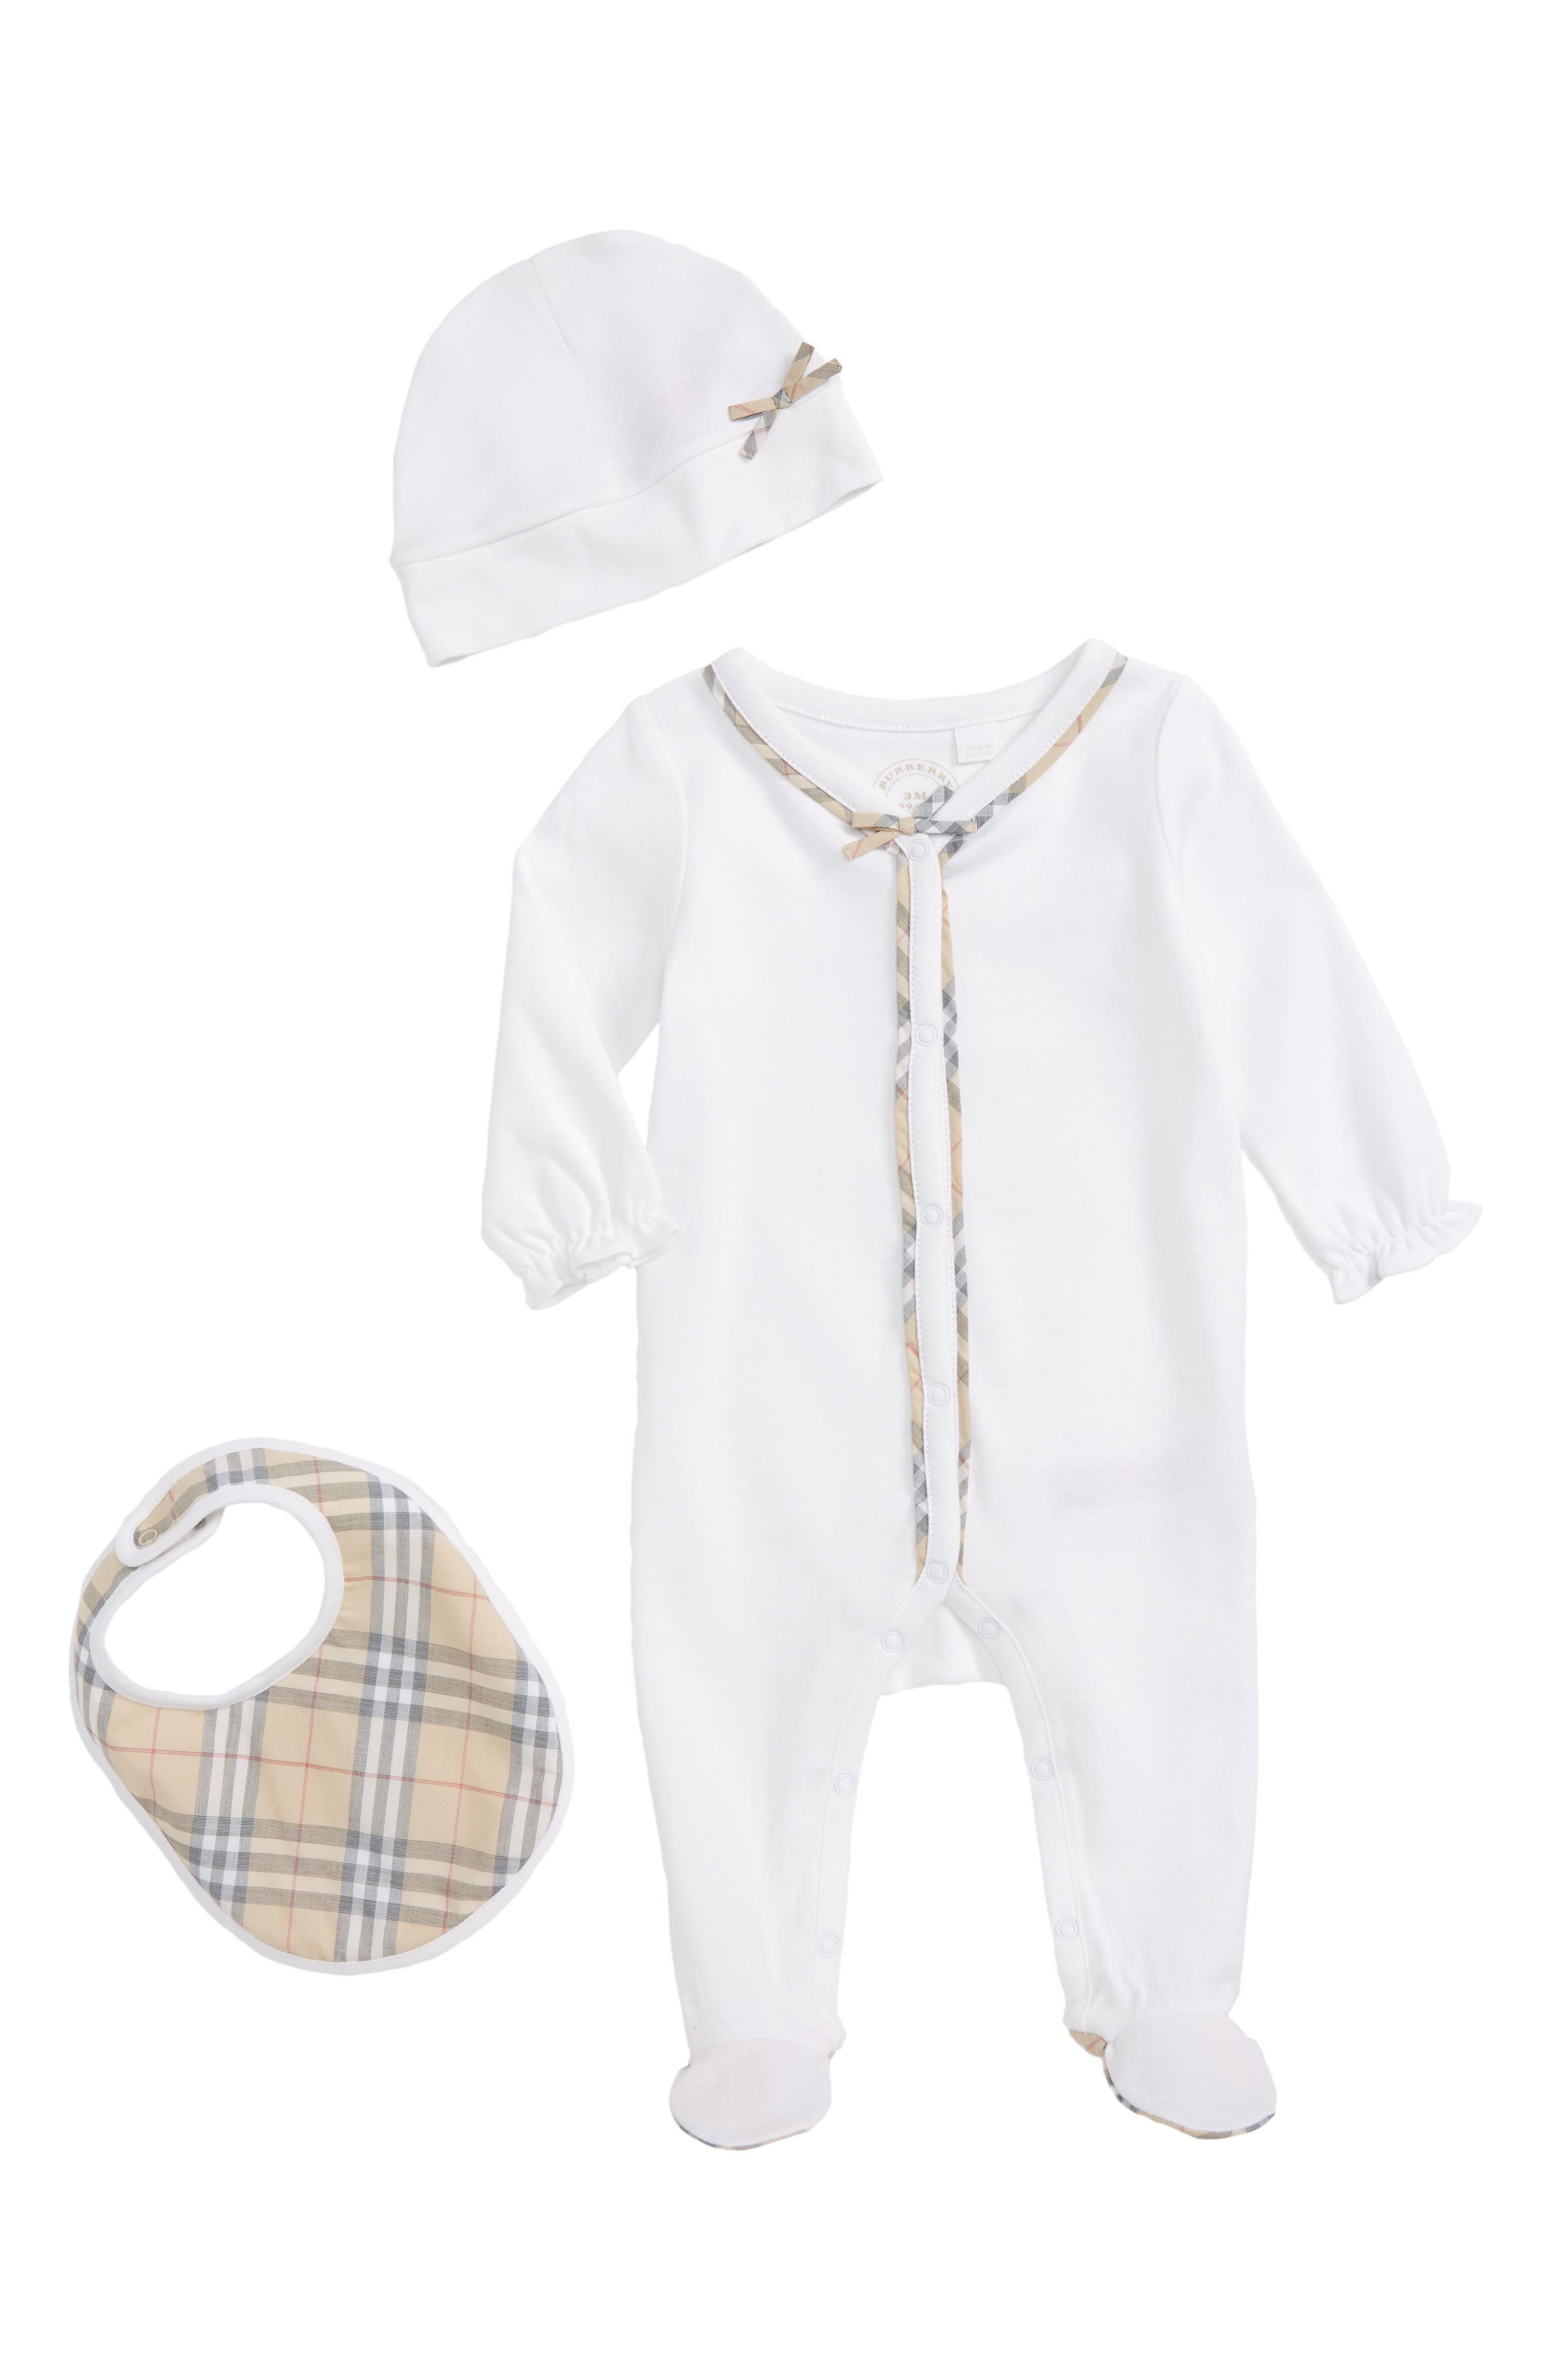 Alternate Image 1 Selected - Burberry Jacey Footie, Hat & Bib Set (Baby Girls)